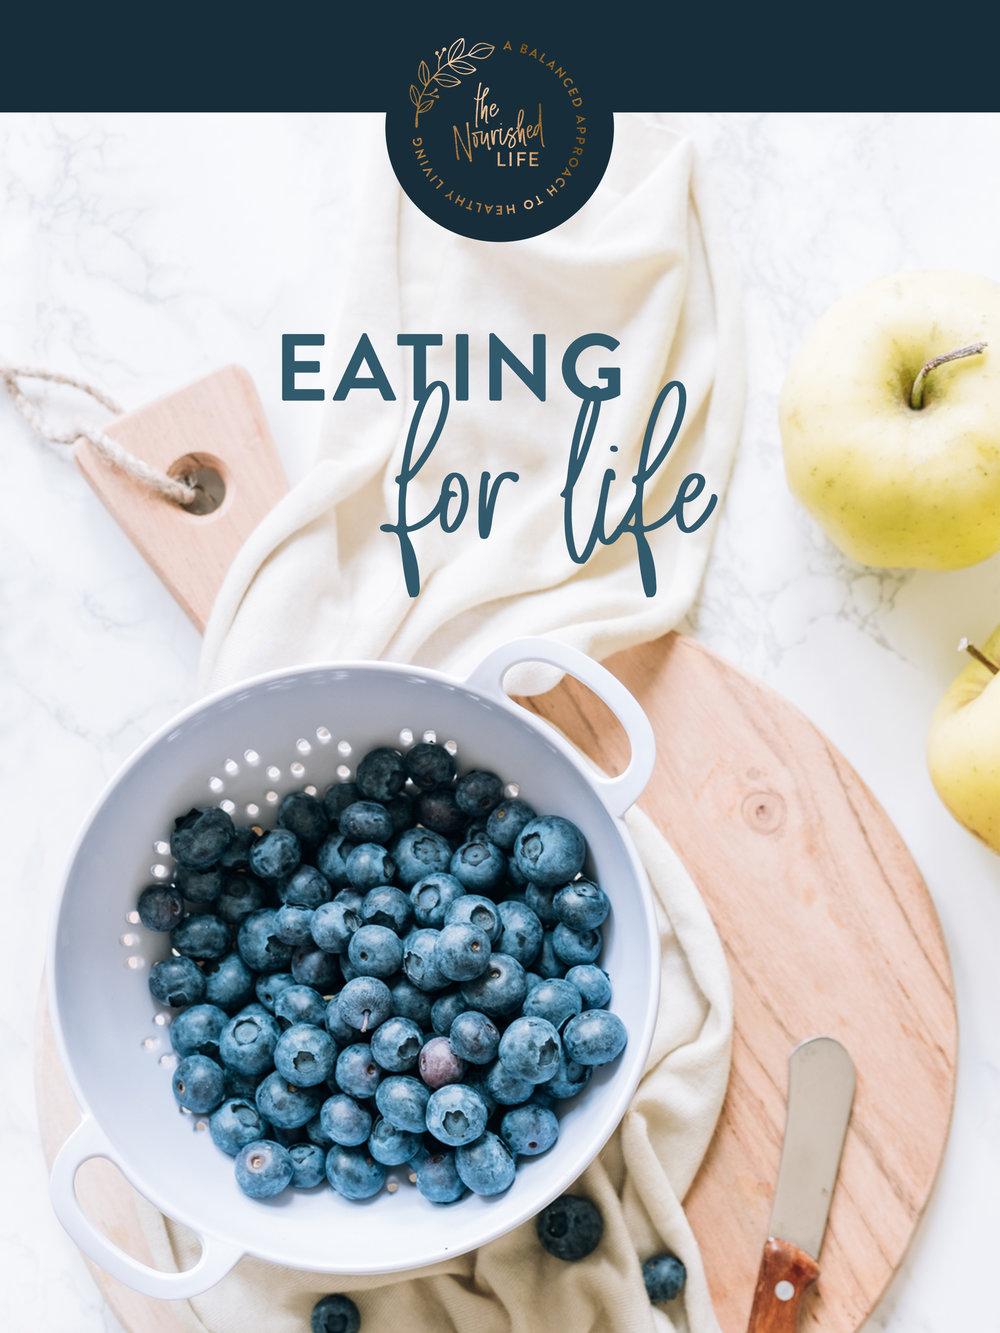 Eating for Life | The Nourished Life e-book design by Janessa Rae Design Creative